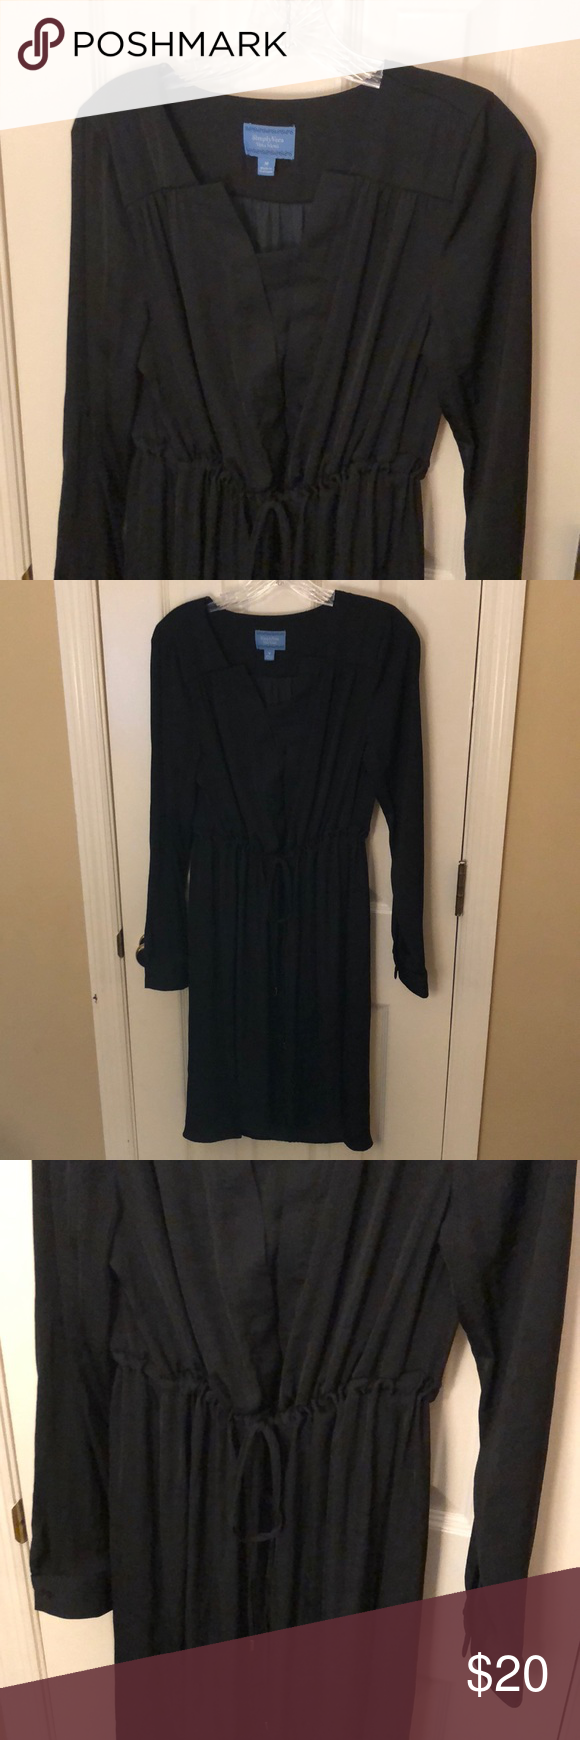 Womenus sz m vera wang black pc dress in my posh closet